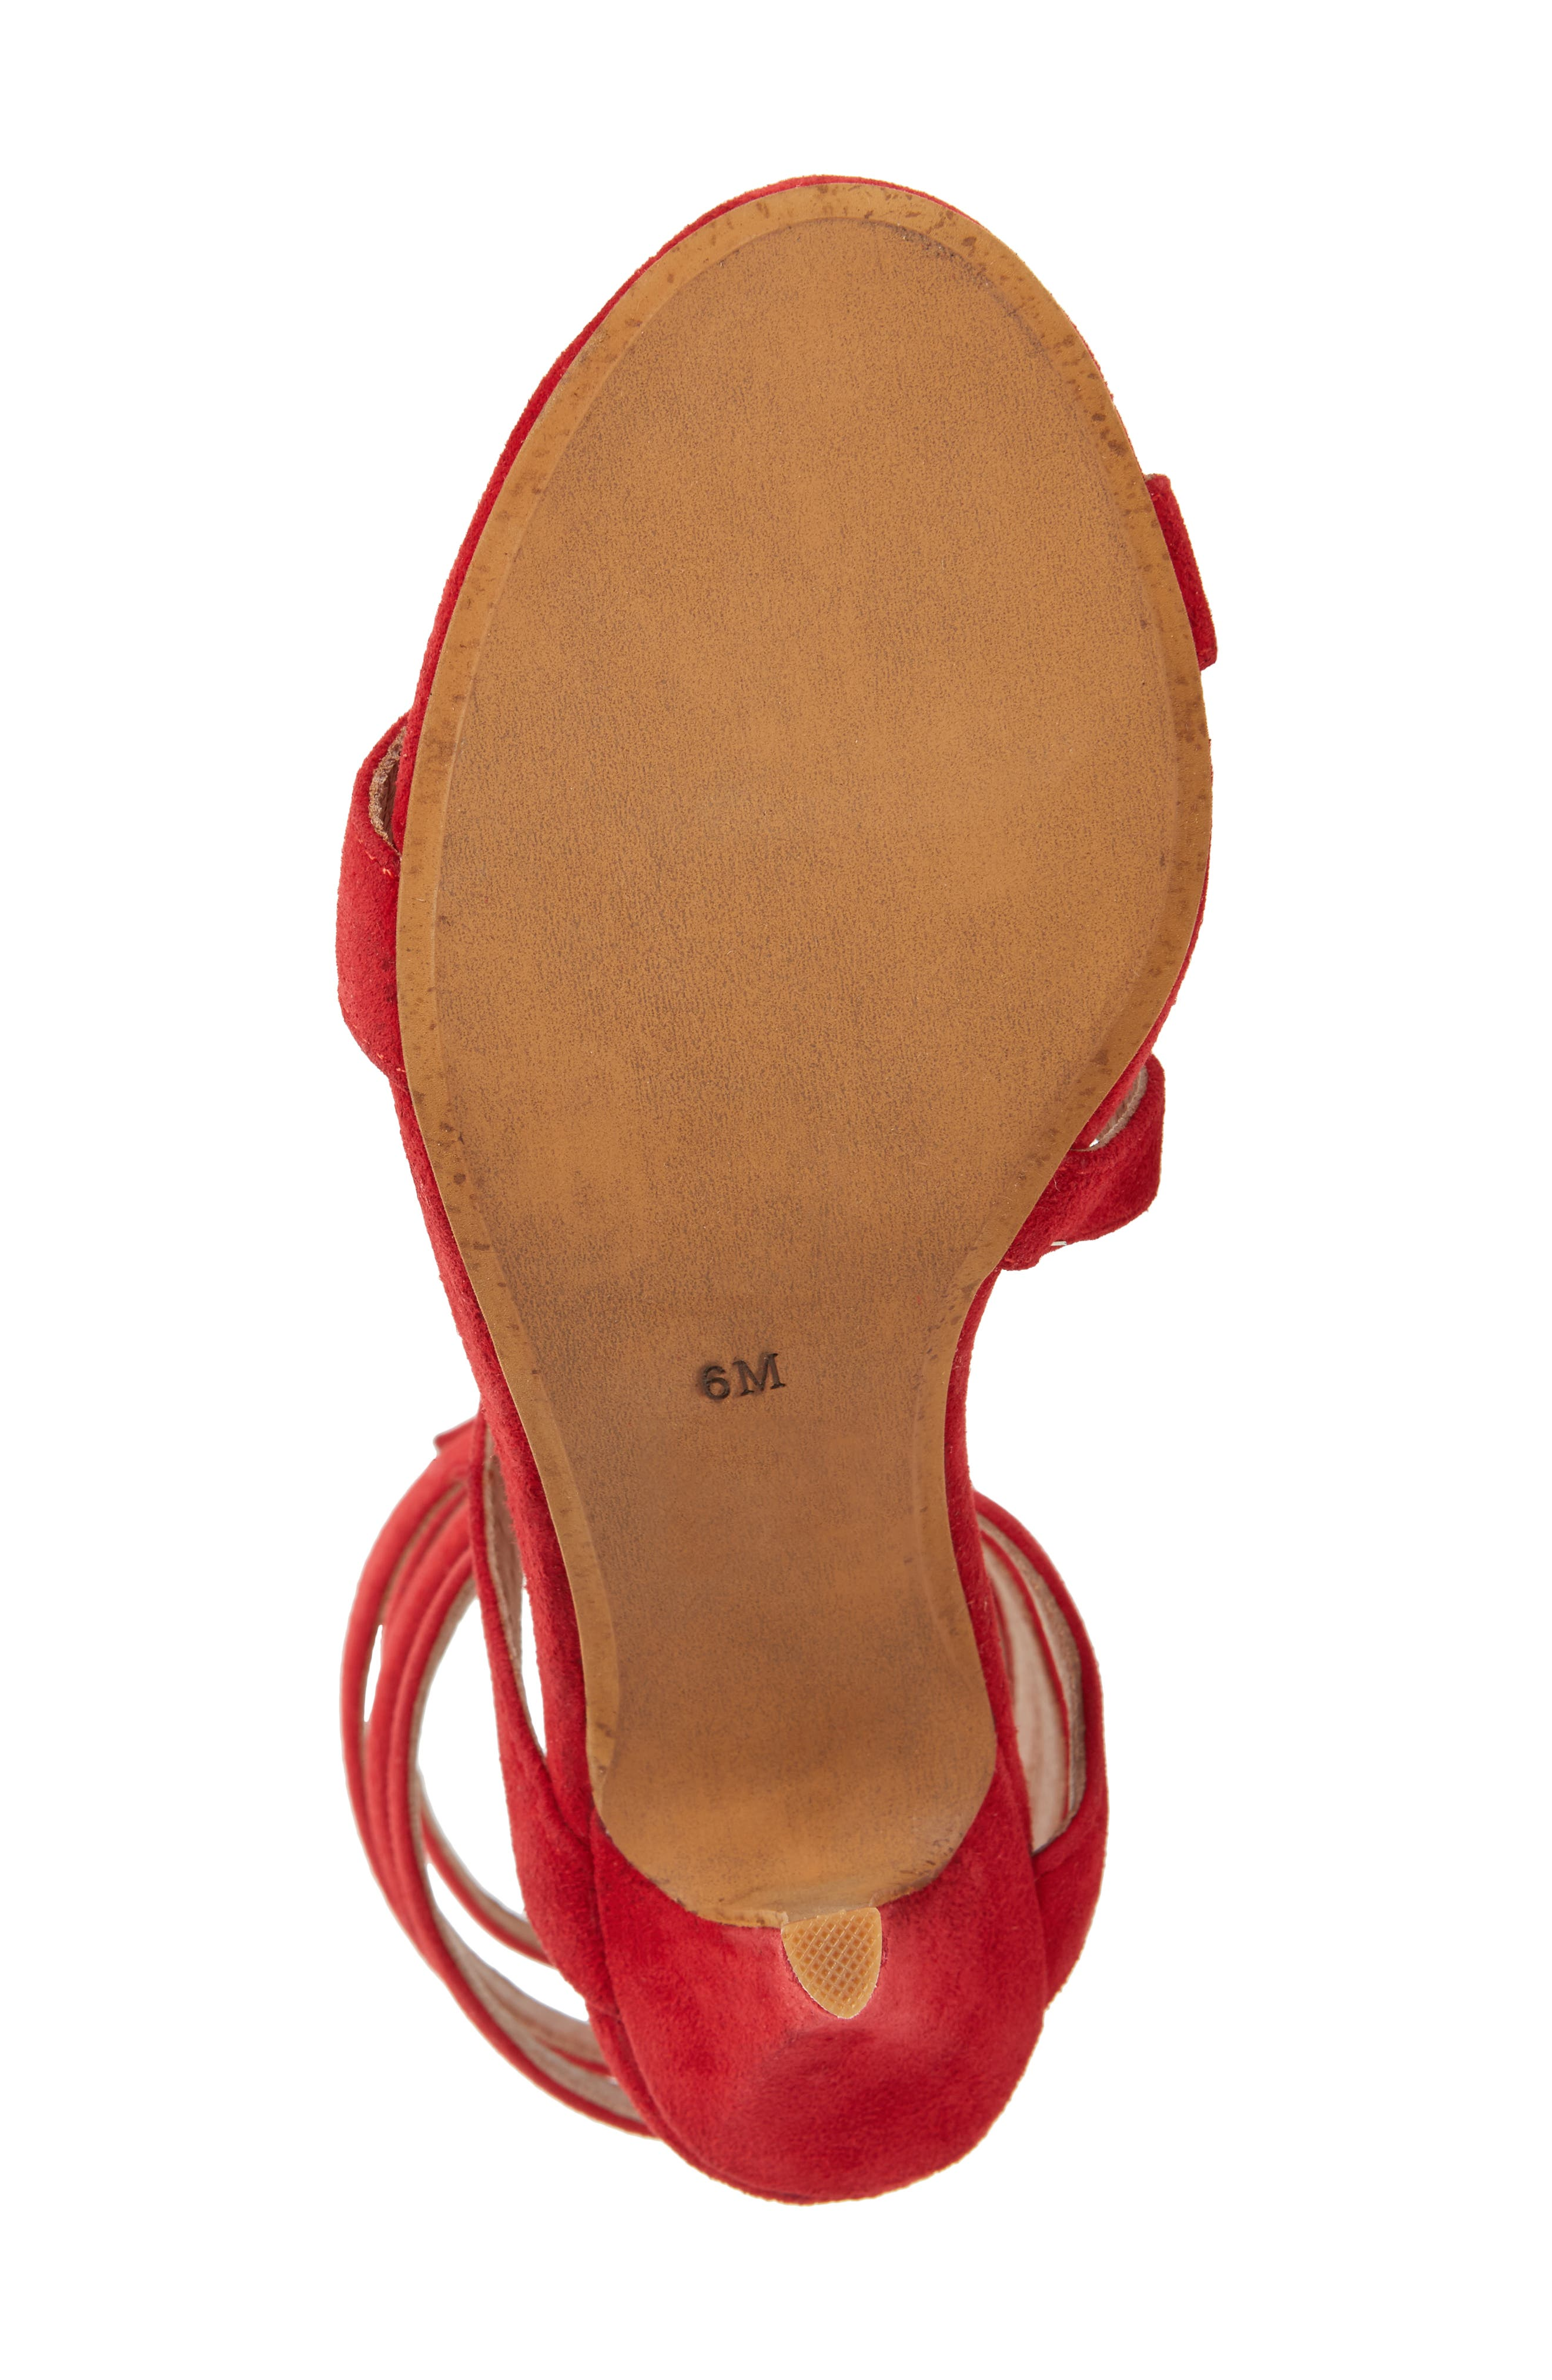 Meline-KH Tall Coil Sandal,                             Alternate thumbnail 6, color,                             Red Suede